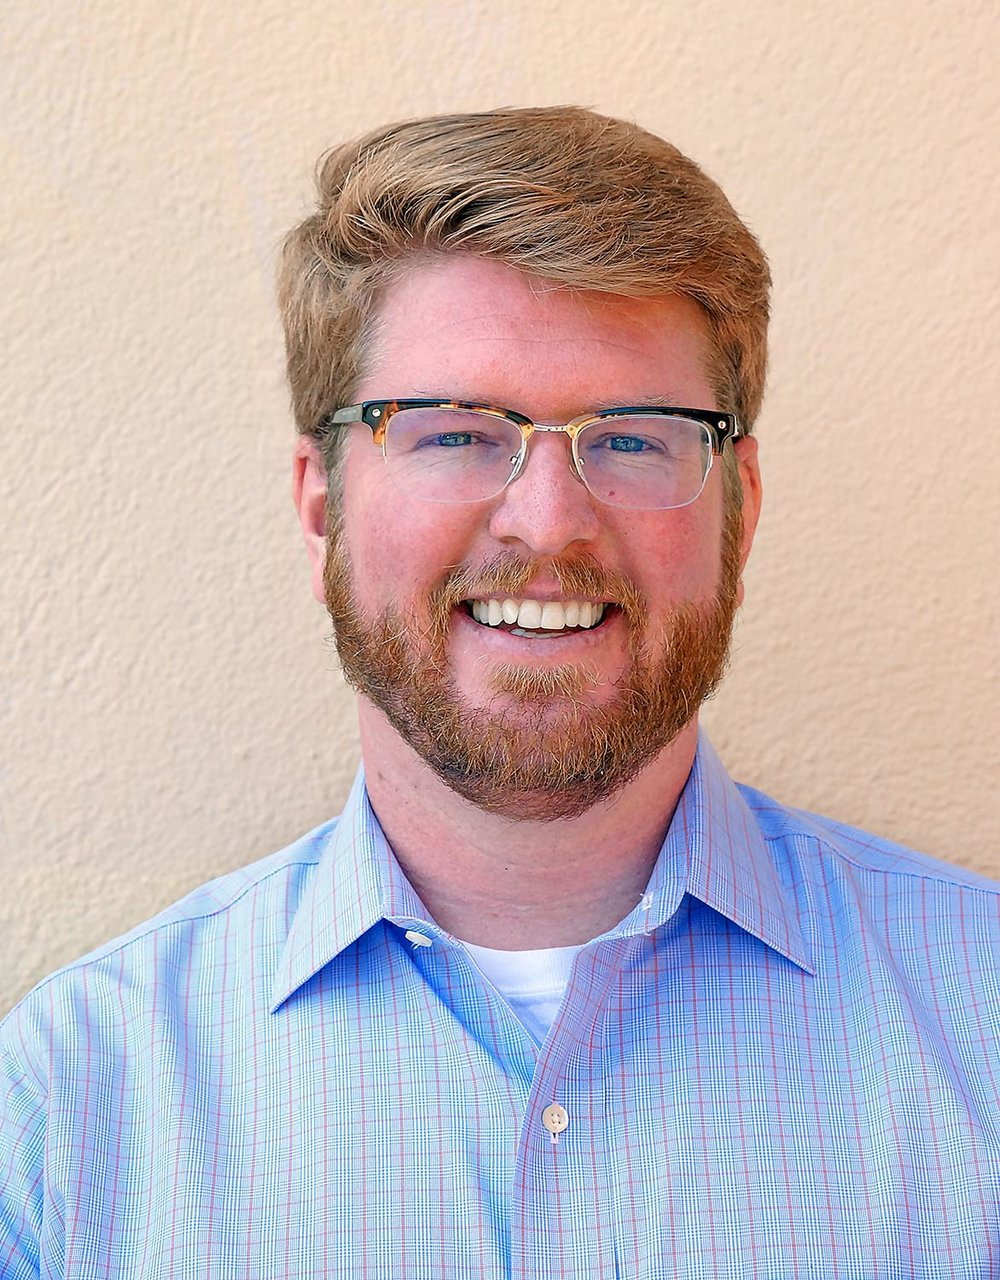 - Derek McGill is responsible for management of TAM's planning activities and project management recently leading efforts with Lyft and Zipcar to increase car-share opportunities in Marin. He has over 10 years of public and private experience in long range and capital investment planning for transit and roadway projects throughout California.